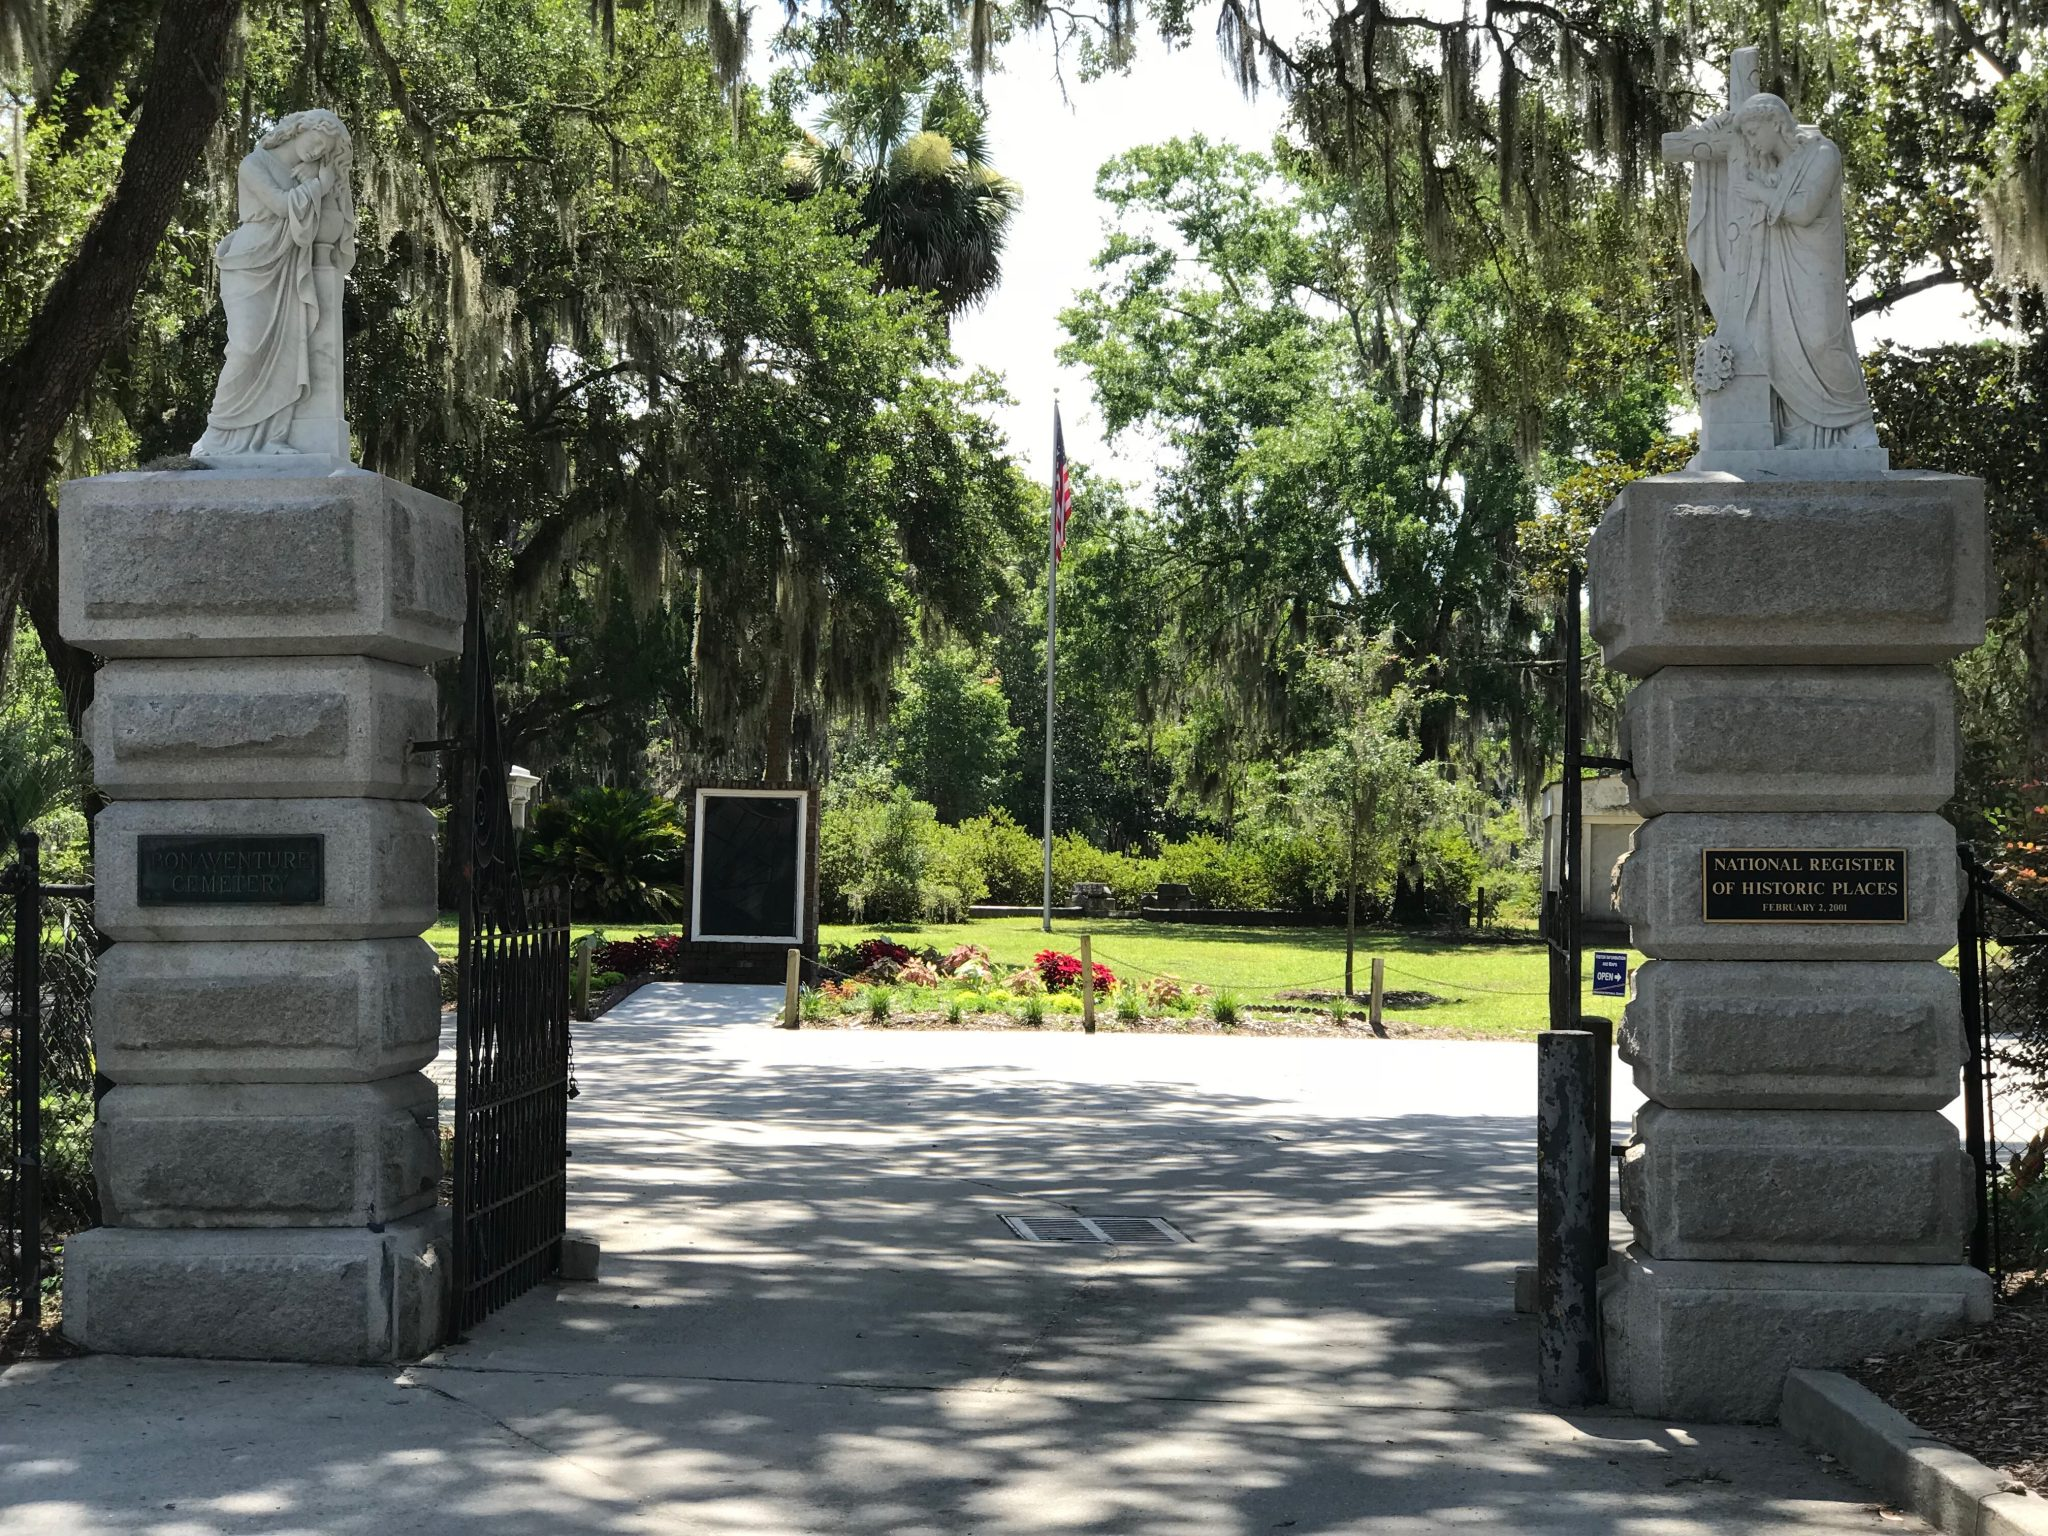 Boneventure Cemetery entrance